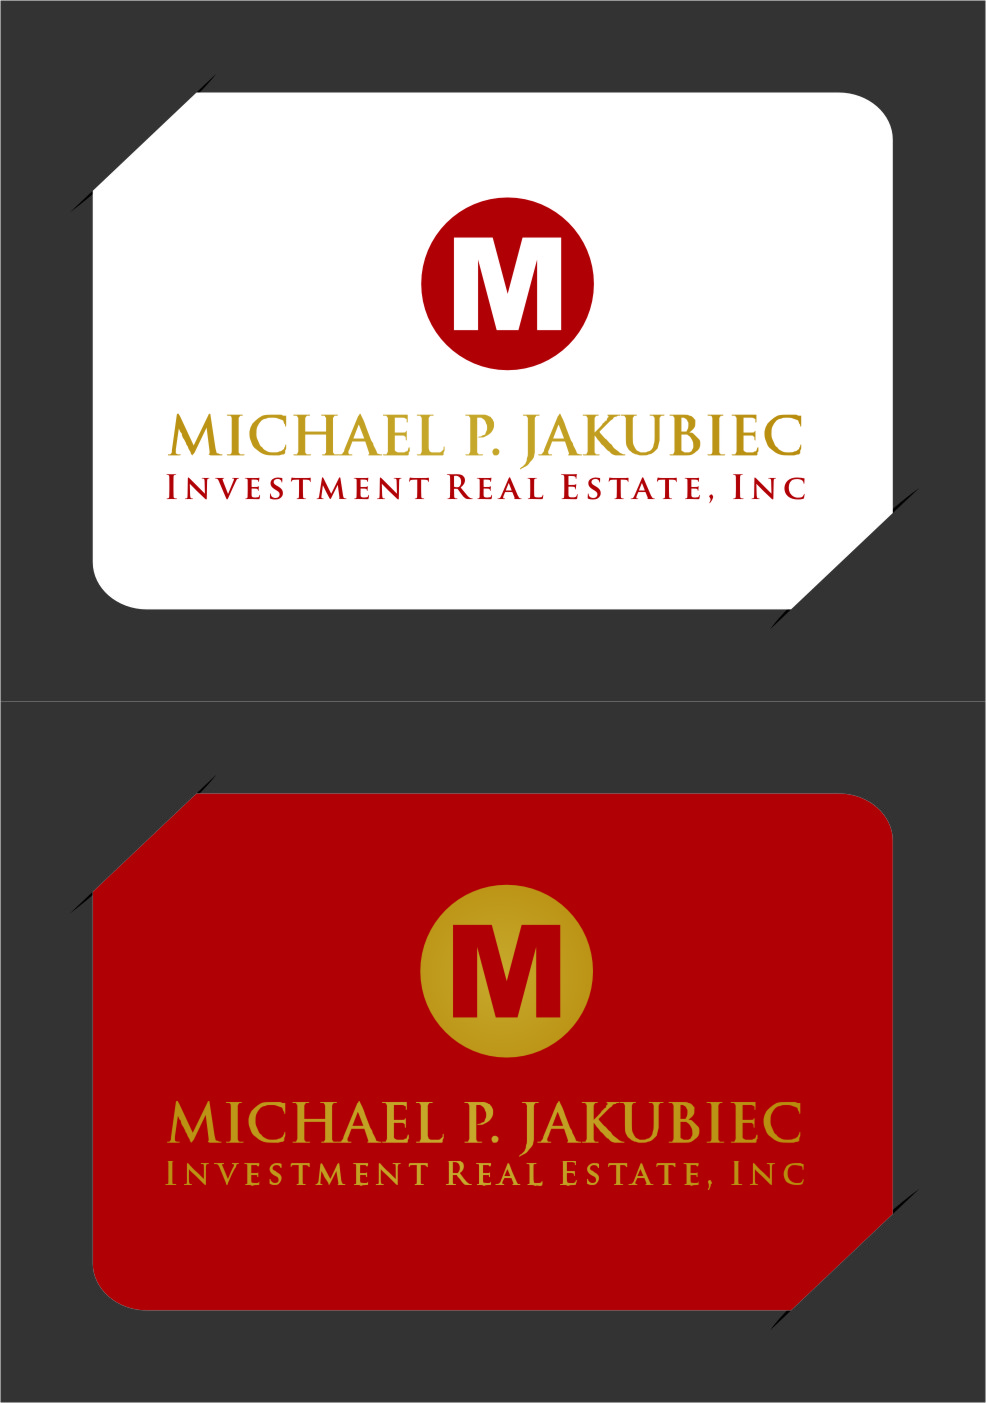 Logo Design by Ngepet_art - Entry No. 130 in the Logo Design Contest New Logo Design for Michael P. Jakubiec Investment Real Estate, Inc..